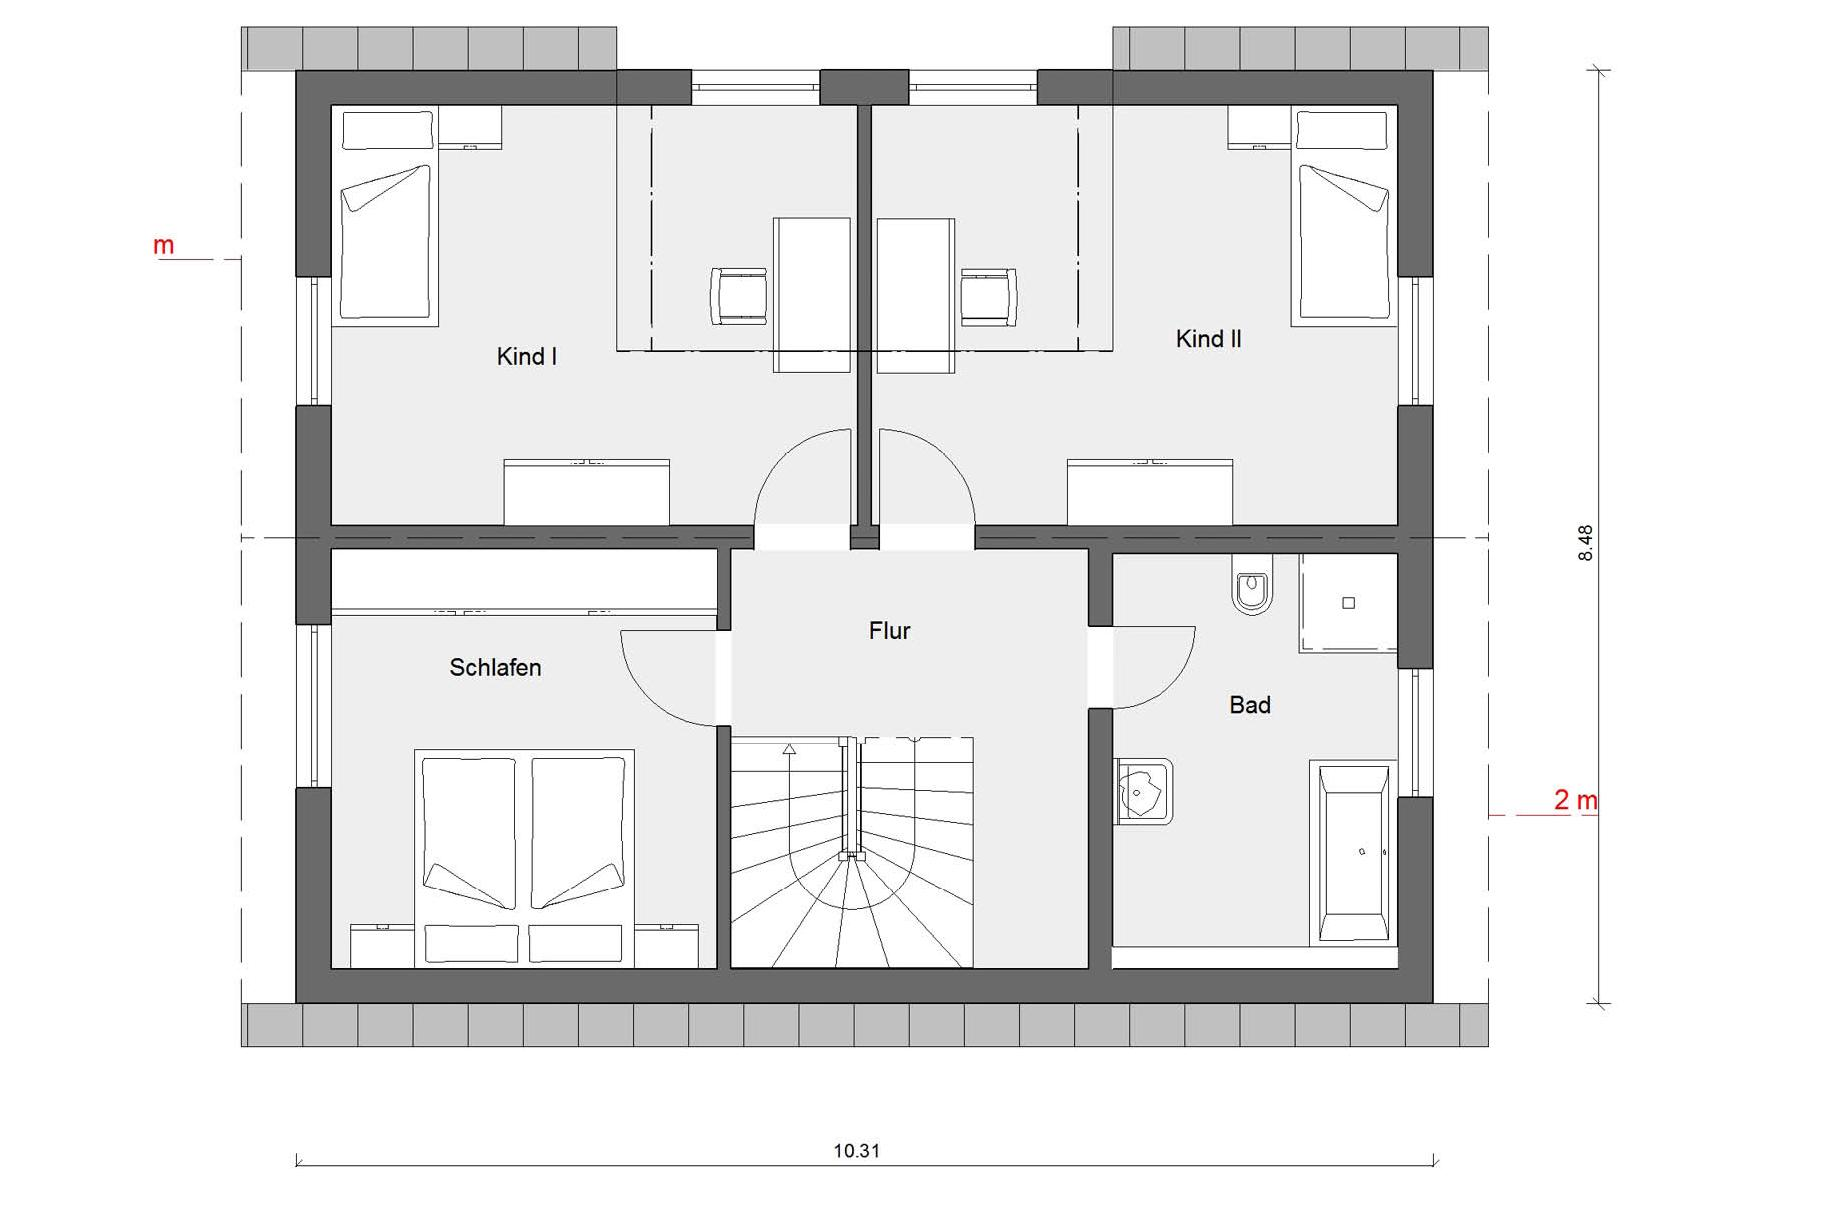 Ground floor attic E 15-143.15 House with flat roof dormer